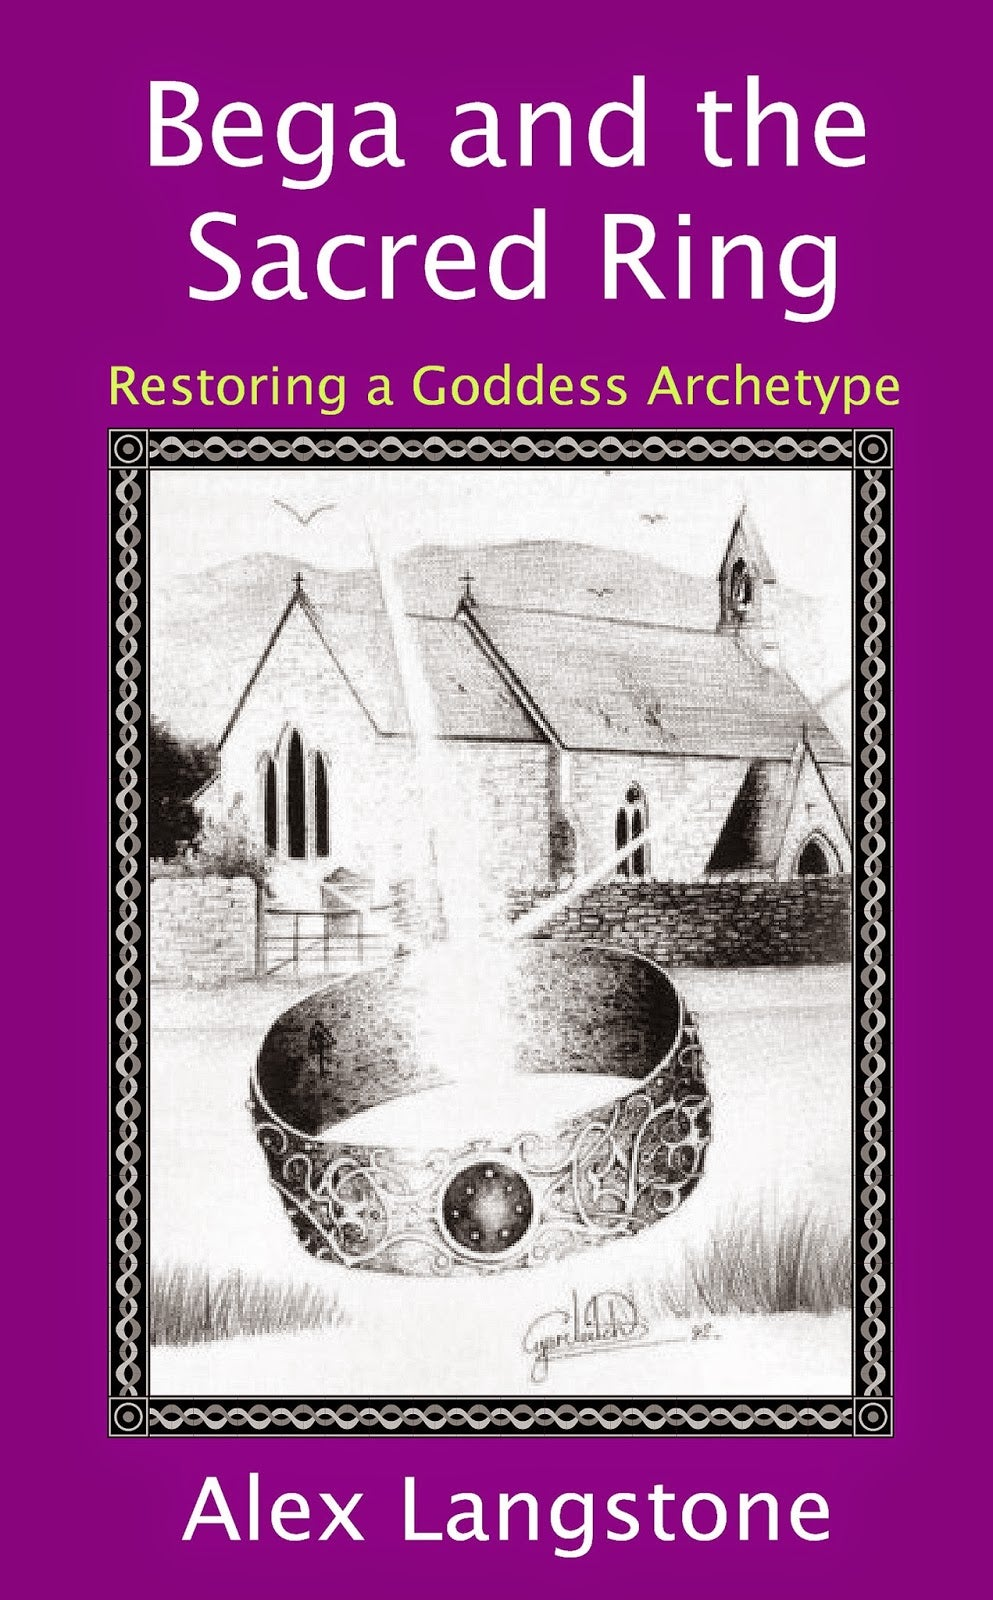 Image of Bega and the Sacred Ring: Restoring a Goddess Archetype (signed by author).